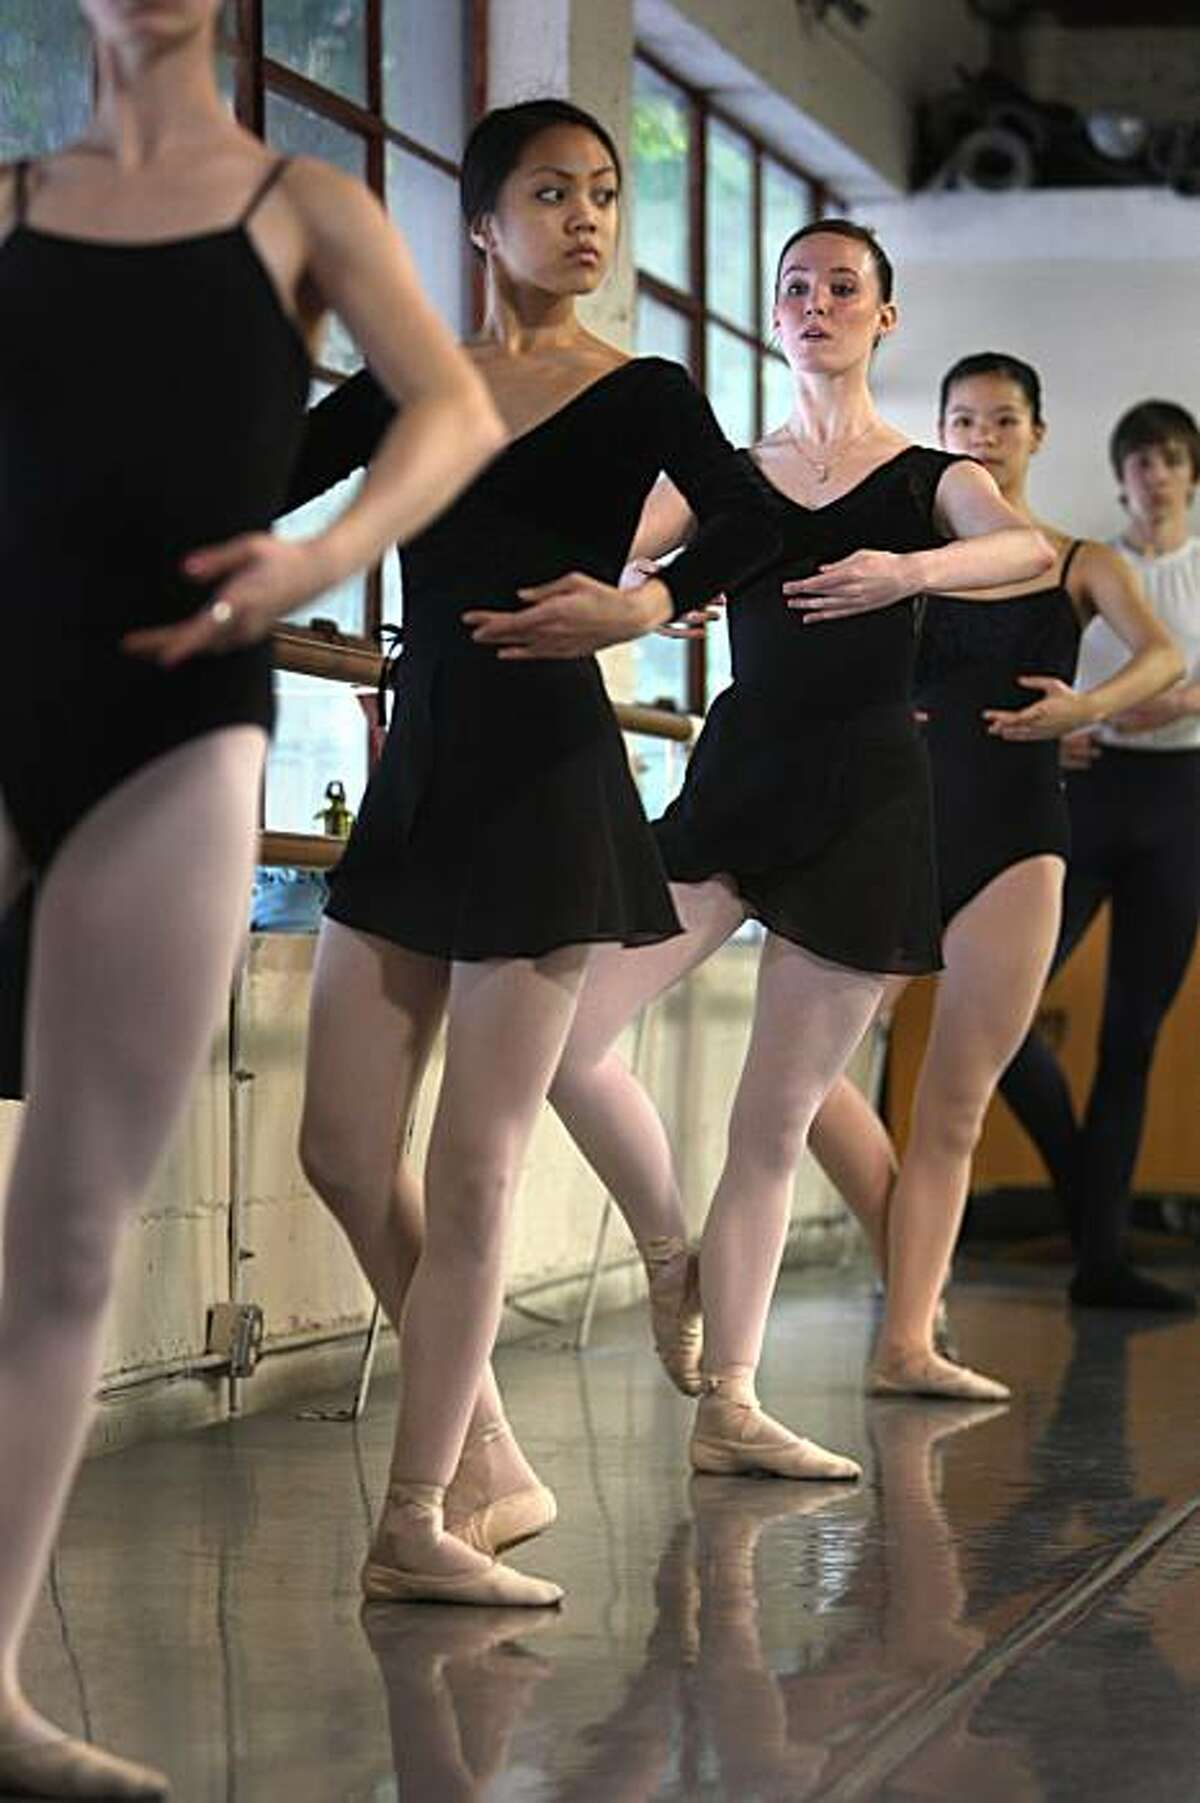 Jeraldine Mendoza (second from left) and Emma Powers (third from left) take a ballet class at the City Ballet School with City Ballet School resident choreographer Yuri Zhukov (not shown) in San Francisco, Calif. on Tuesday January 6, 2010.